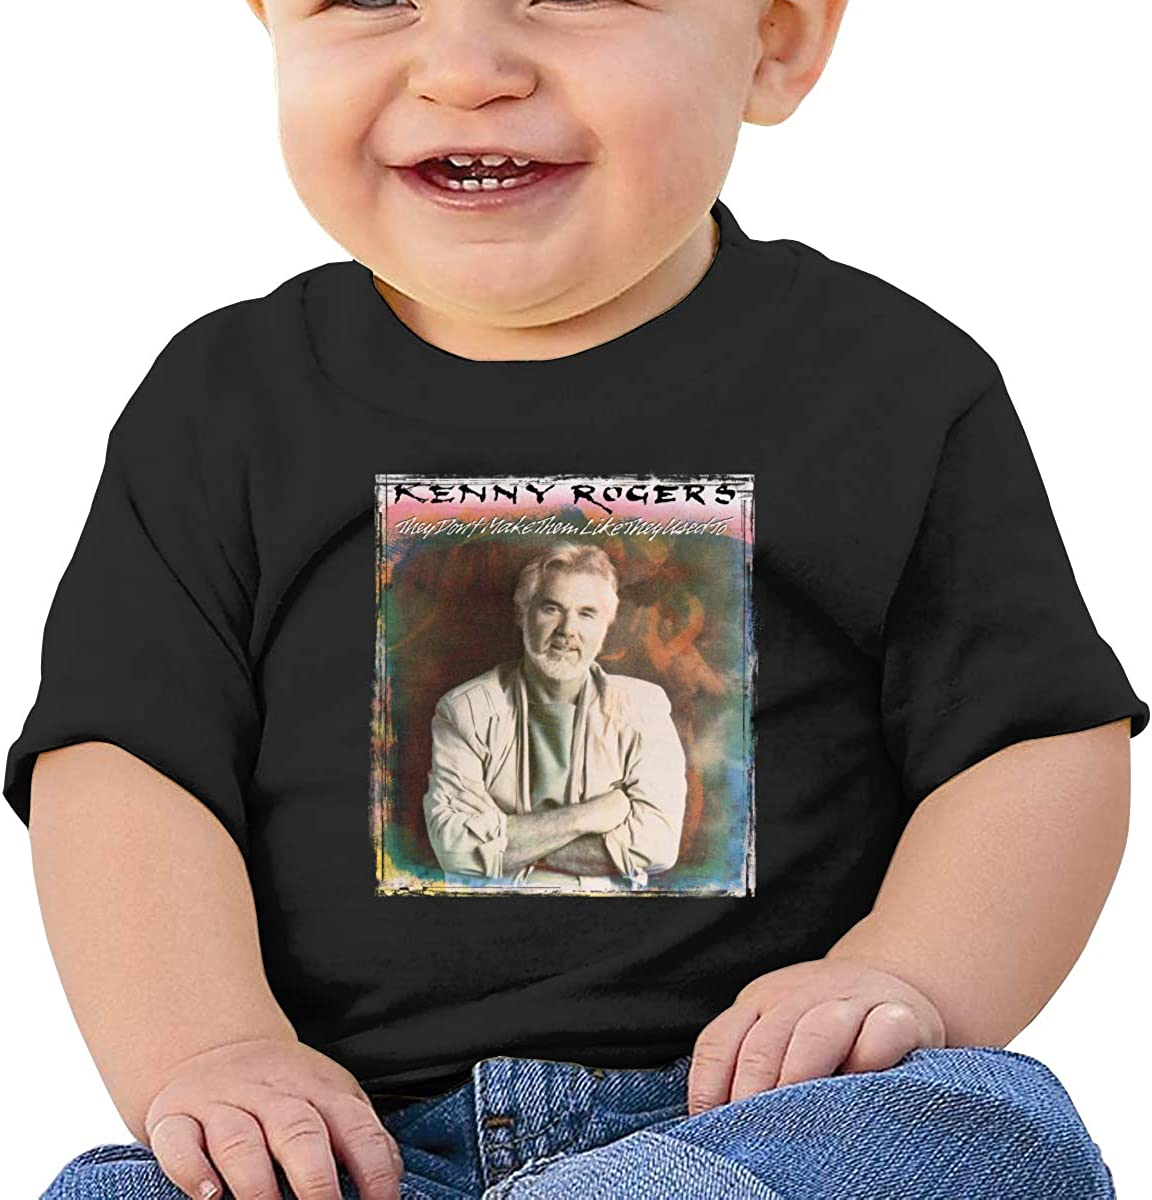 HAOHIYO Baby Kenny Rogers-They Dont Make Them Like They Used to Shirt Toddler Cotton Tee